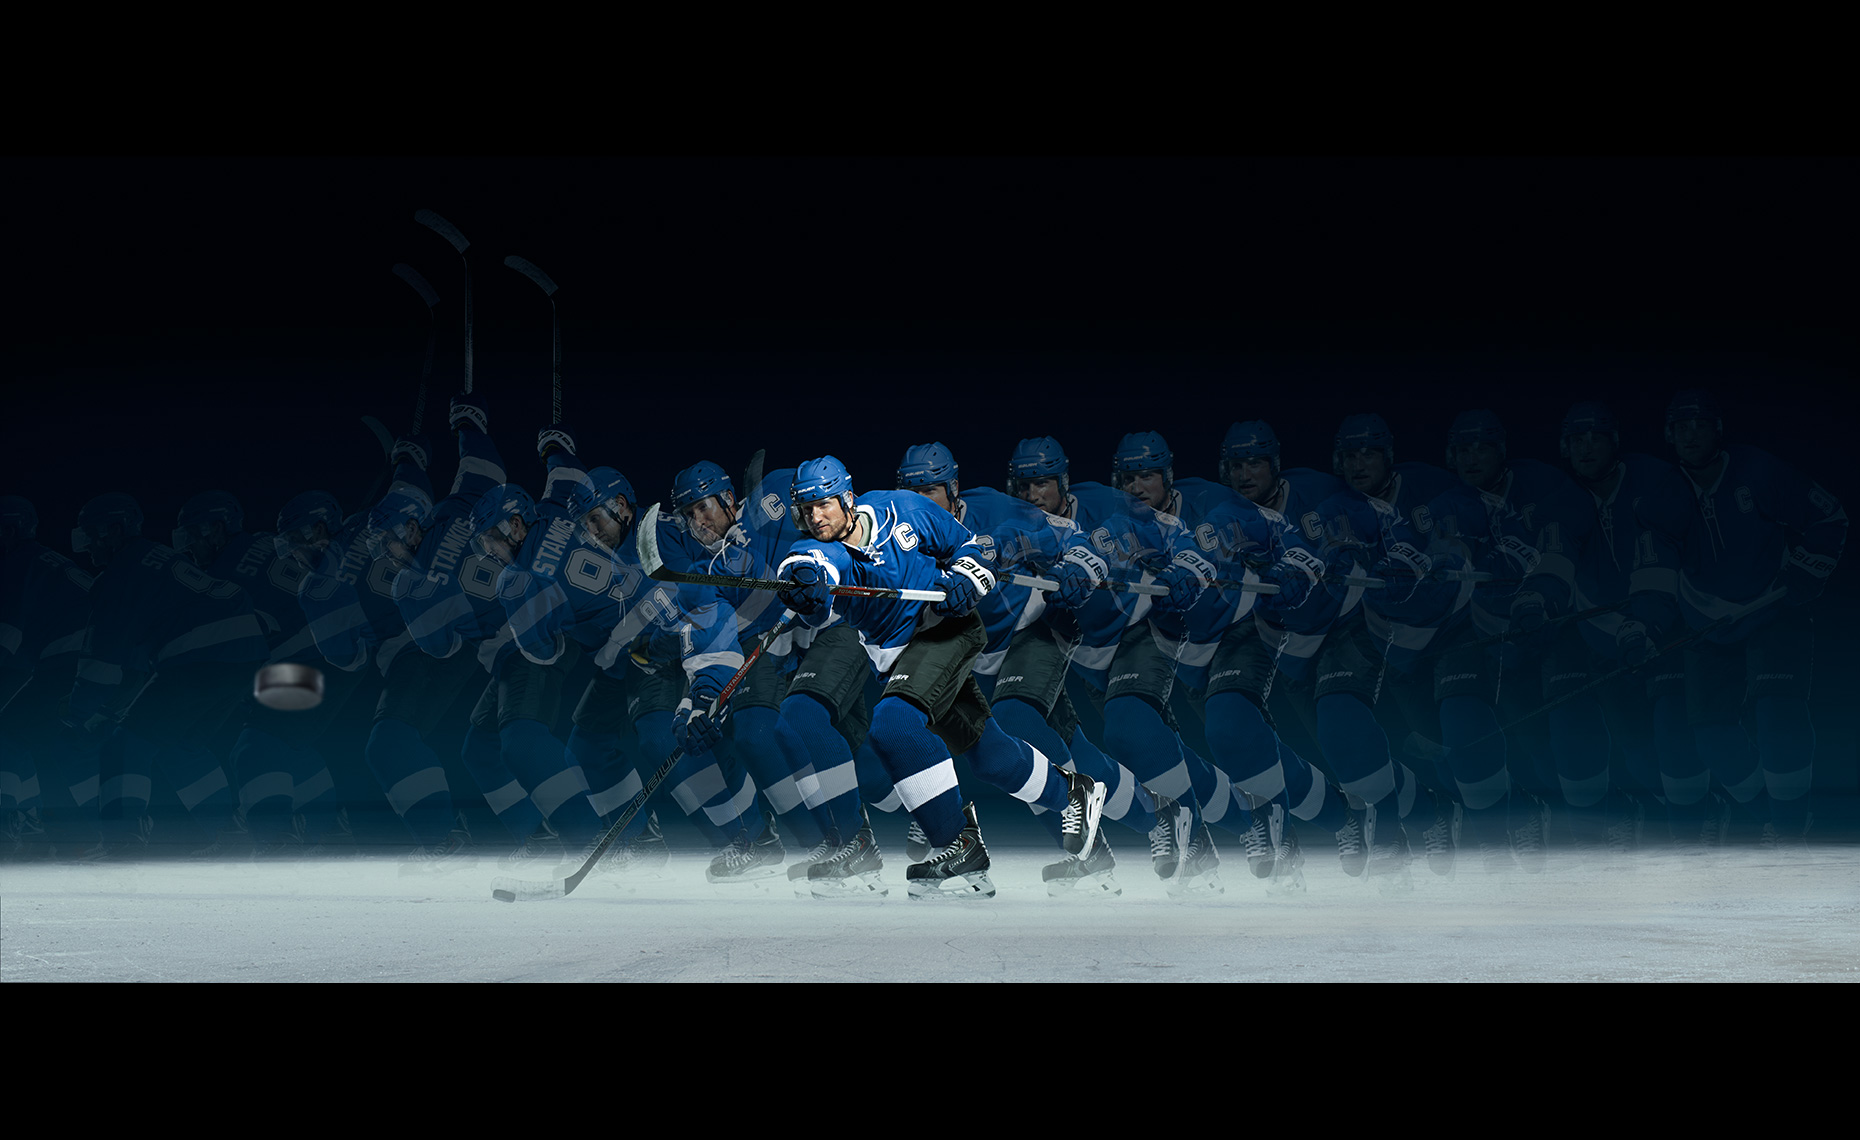 Steven Stamkos Stroboscopic Slap Shot for Powerade.